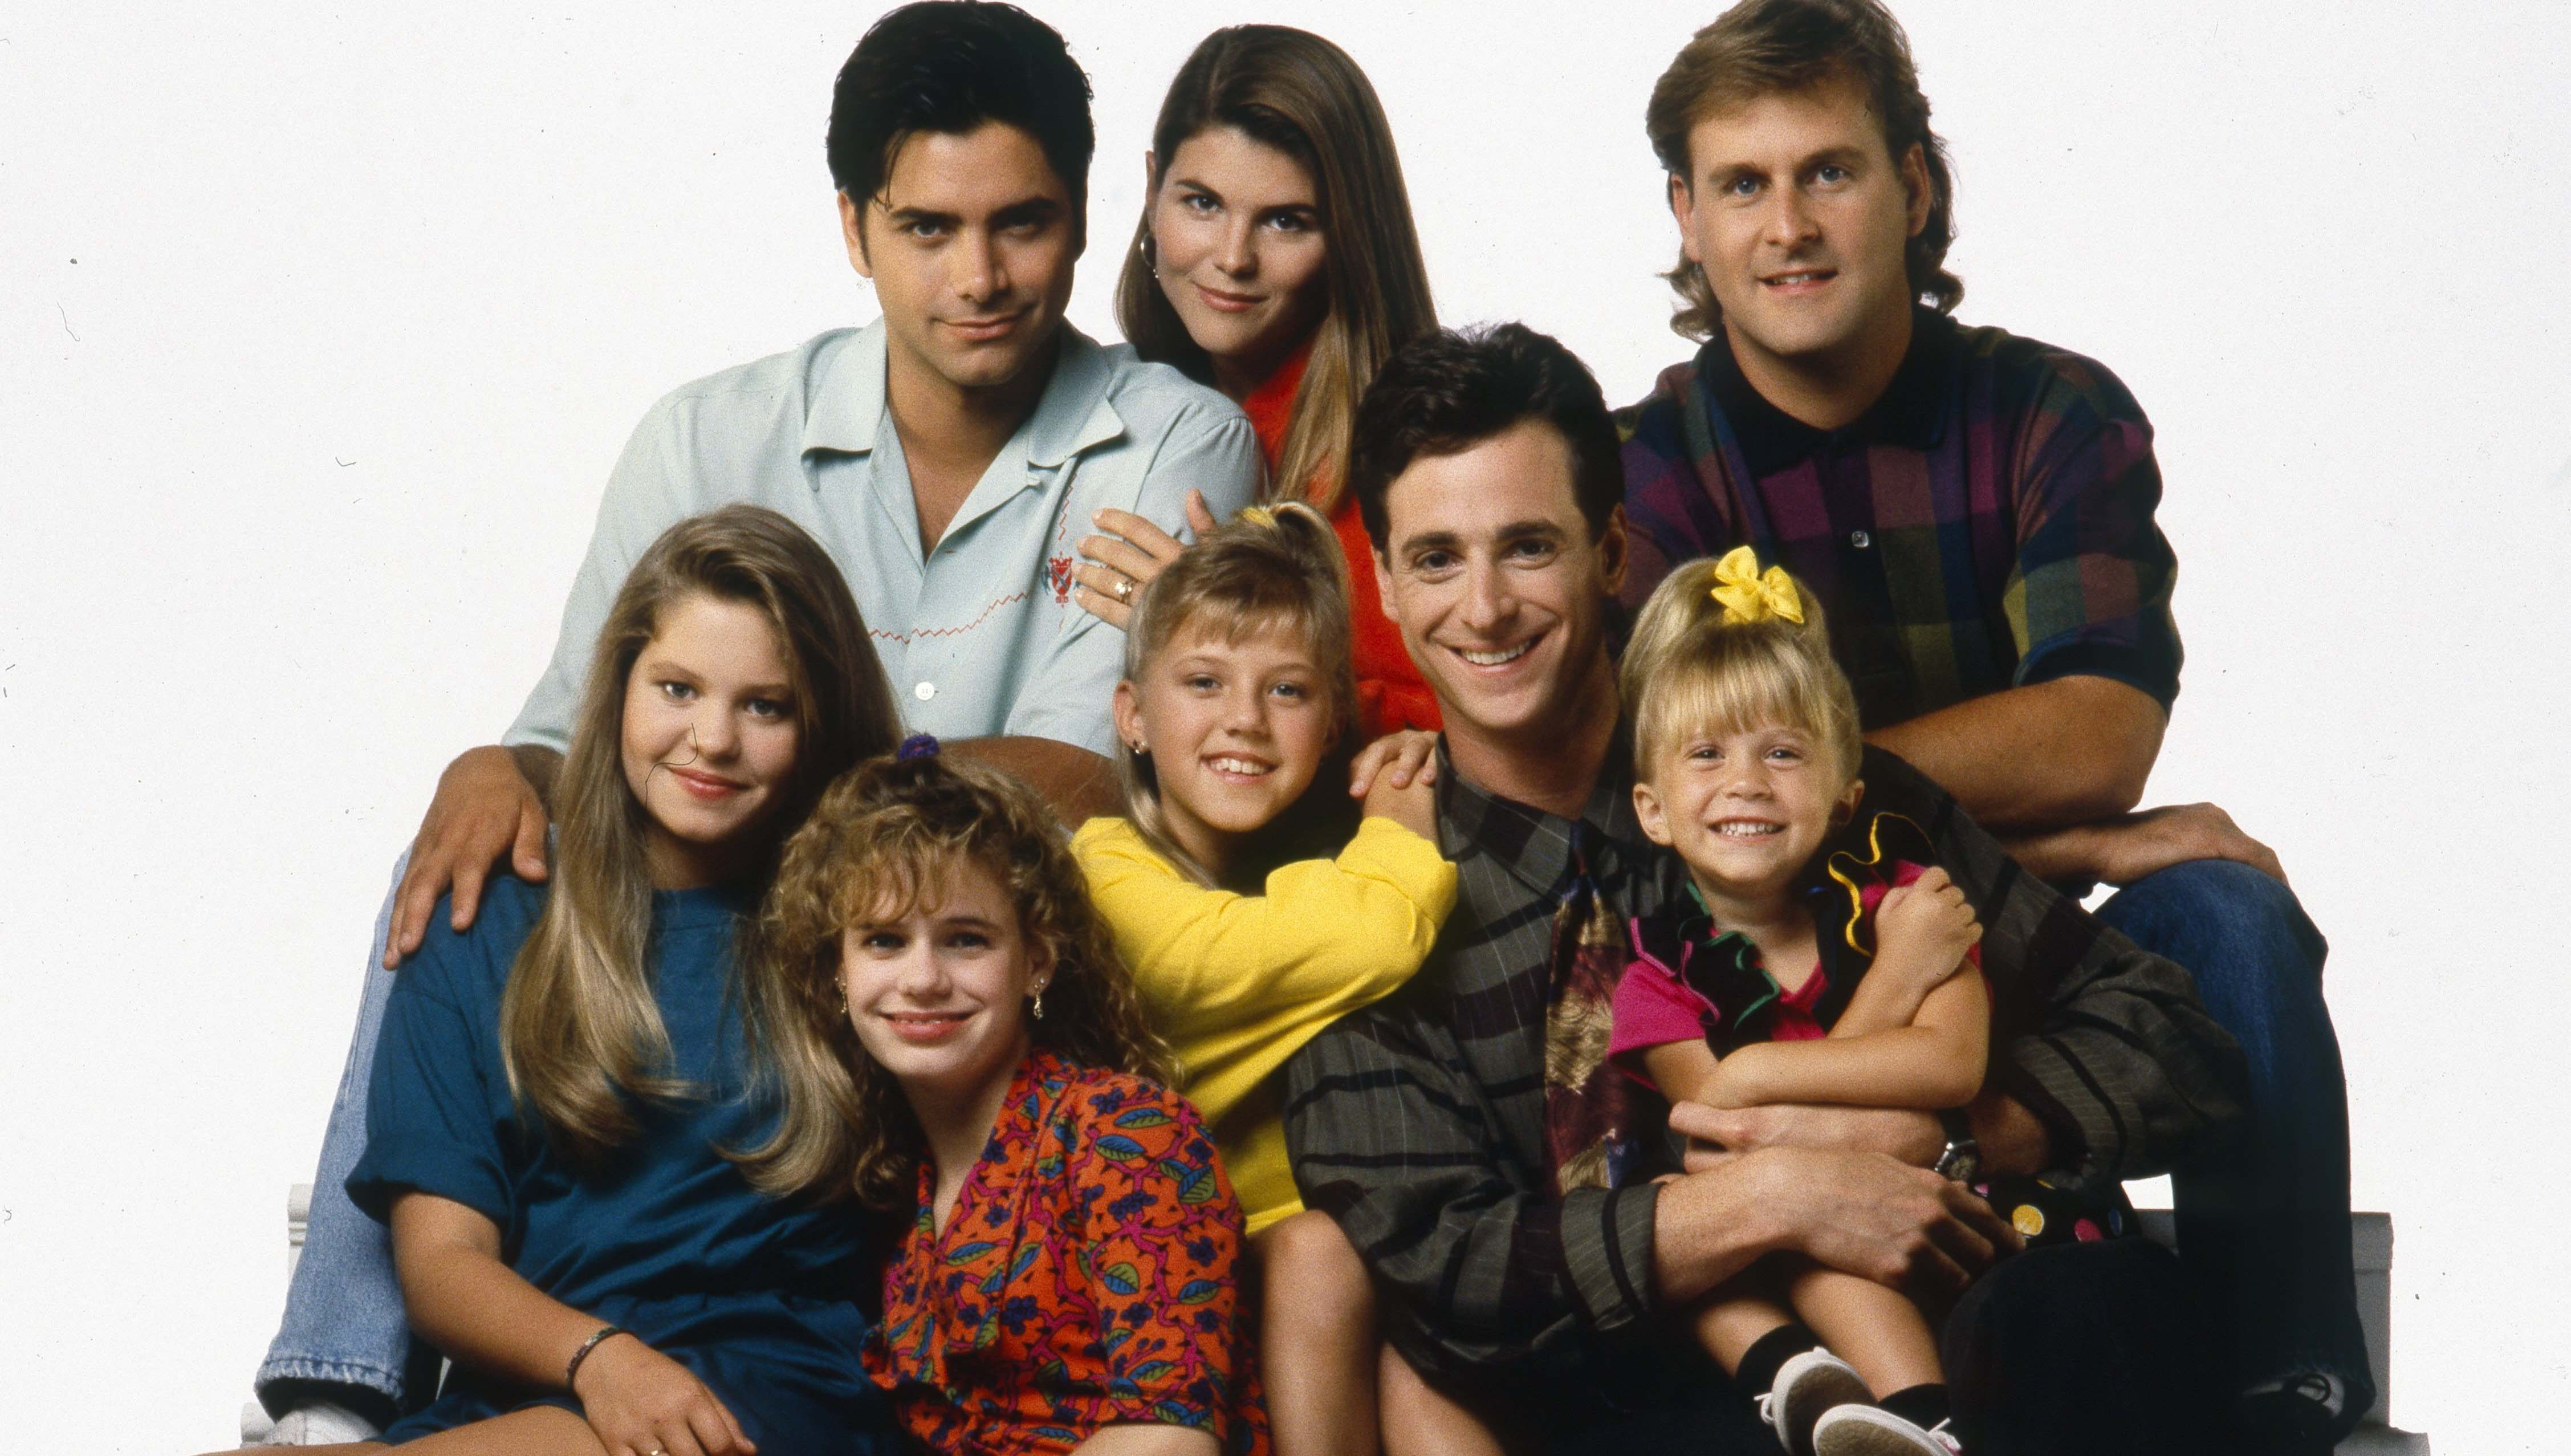 Full house cast finally reunites aol features